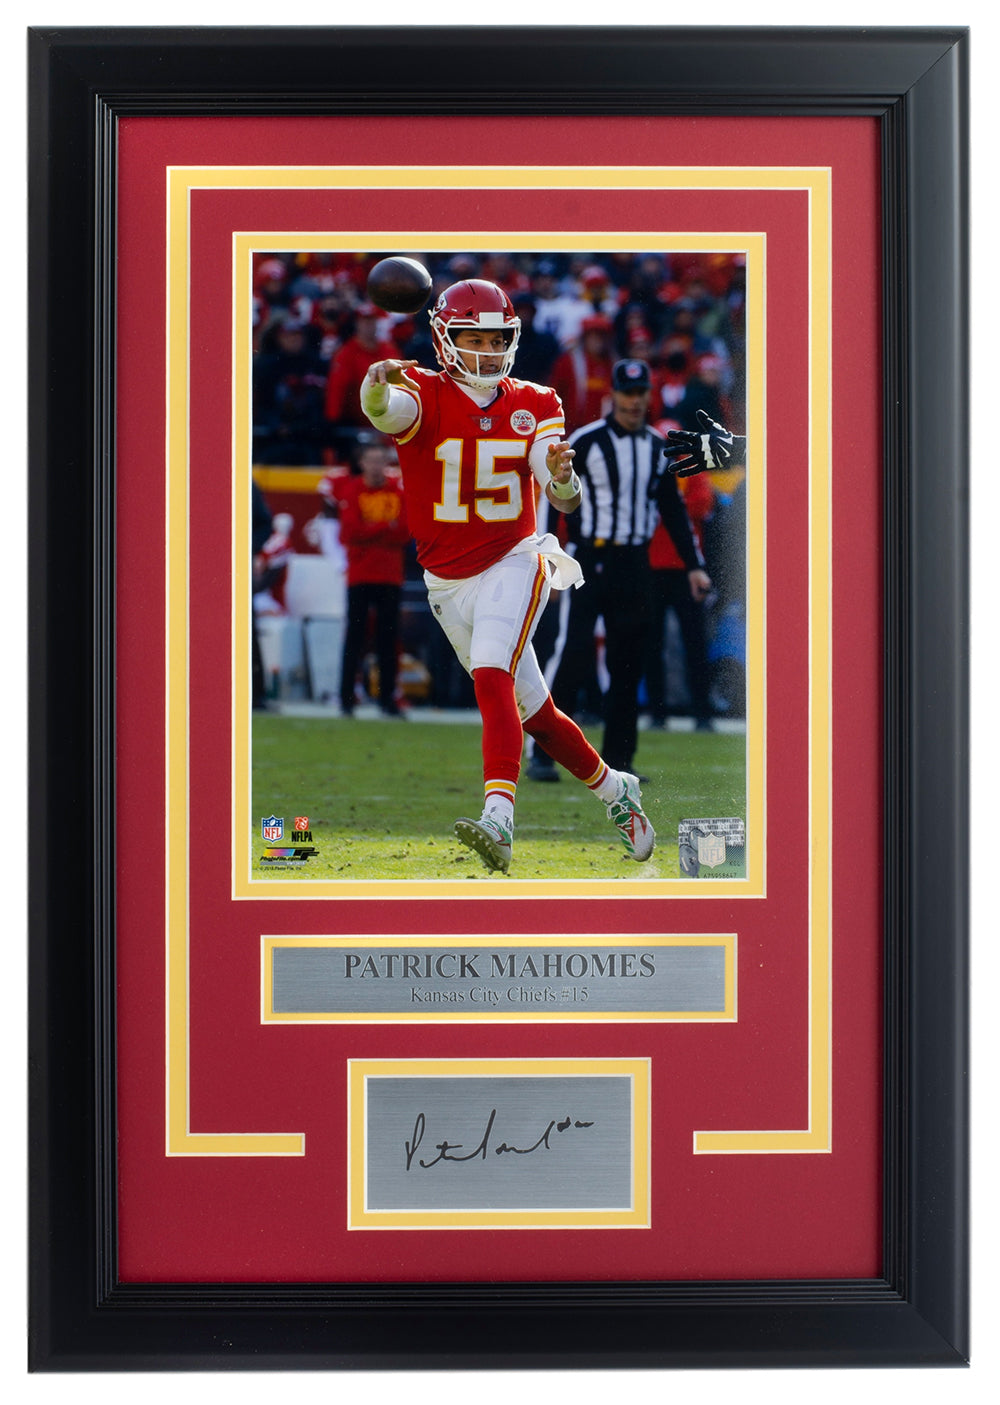 Patrick Mahomes Framed 8x10 Chiefs Photo w/ Laser Engraved Signature